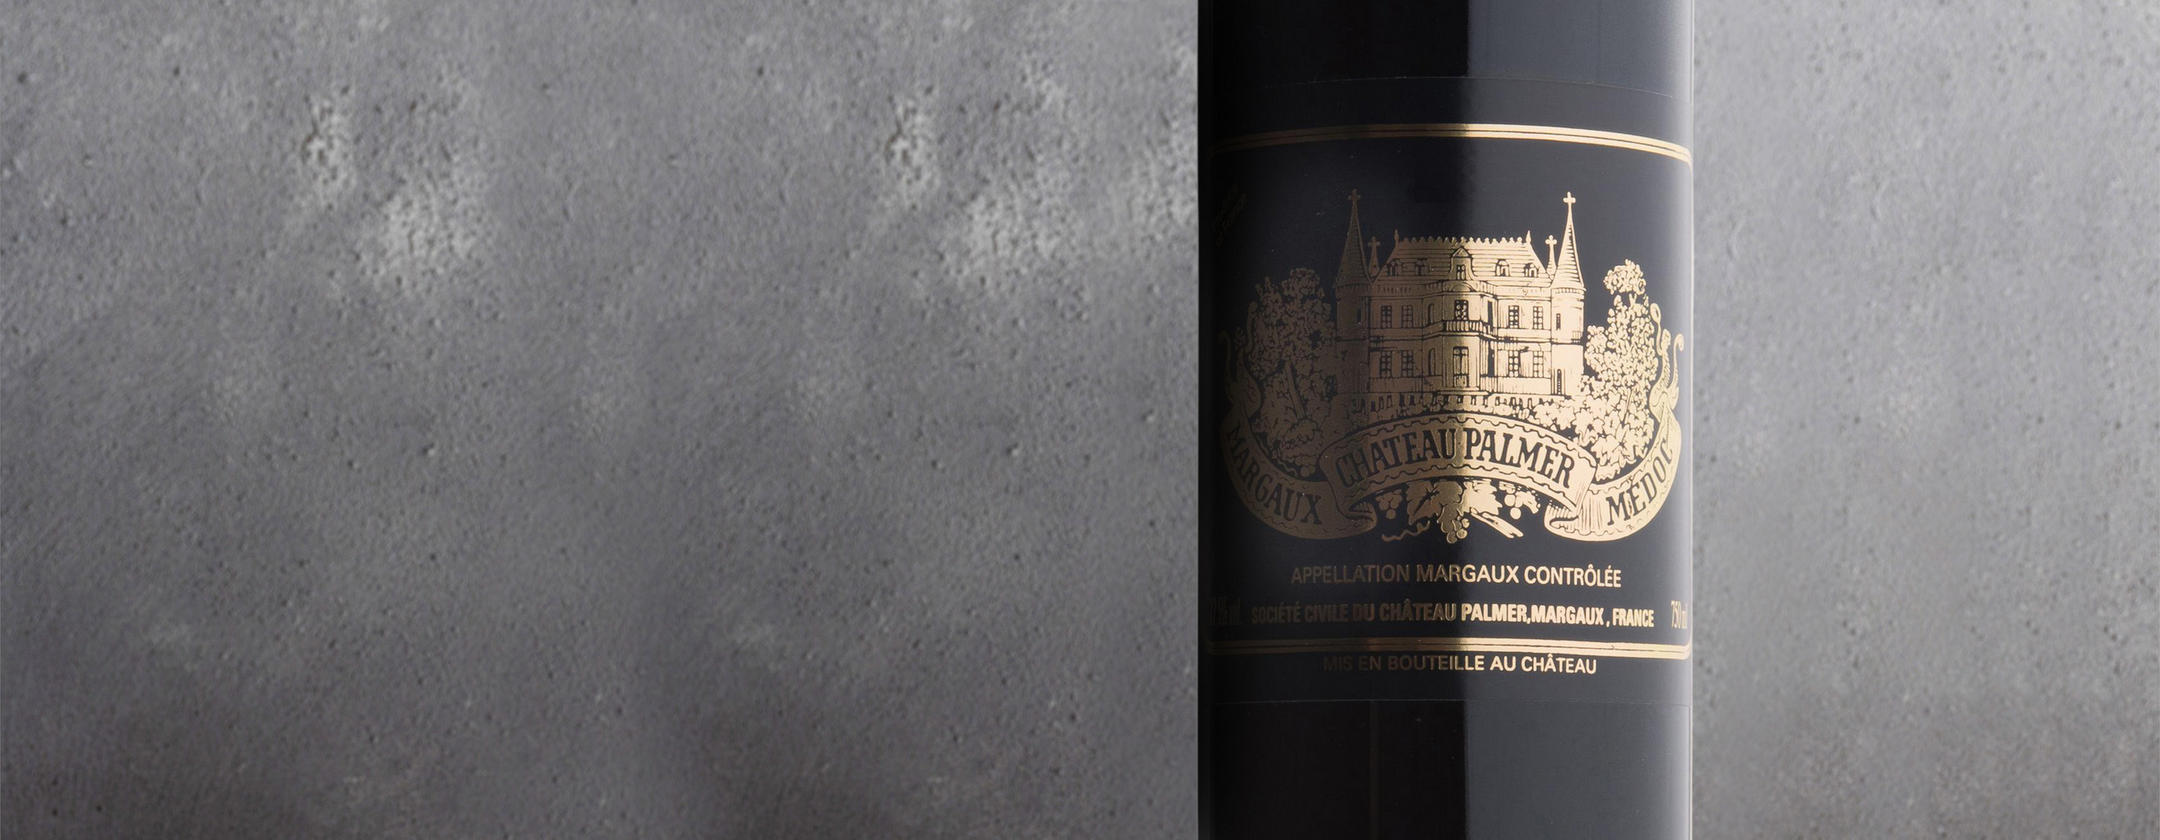 Just released _ 2020 Ch. Palmer, Margaux